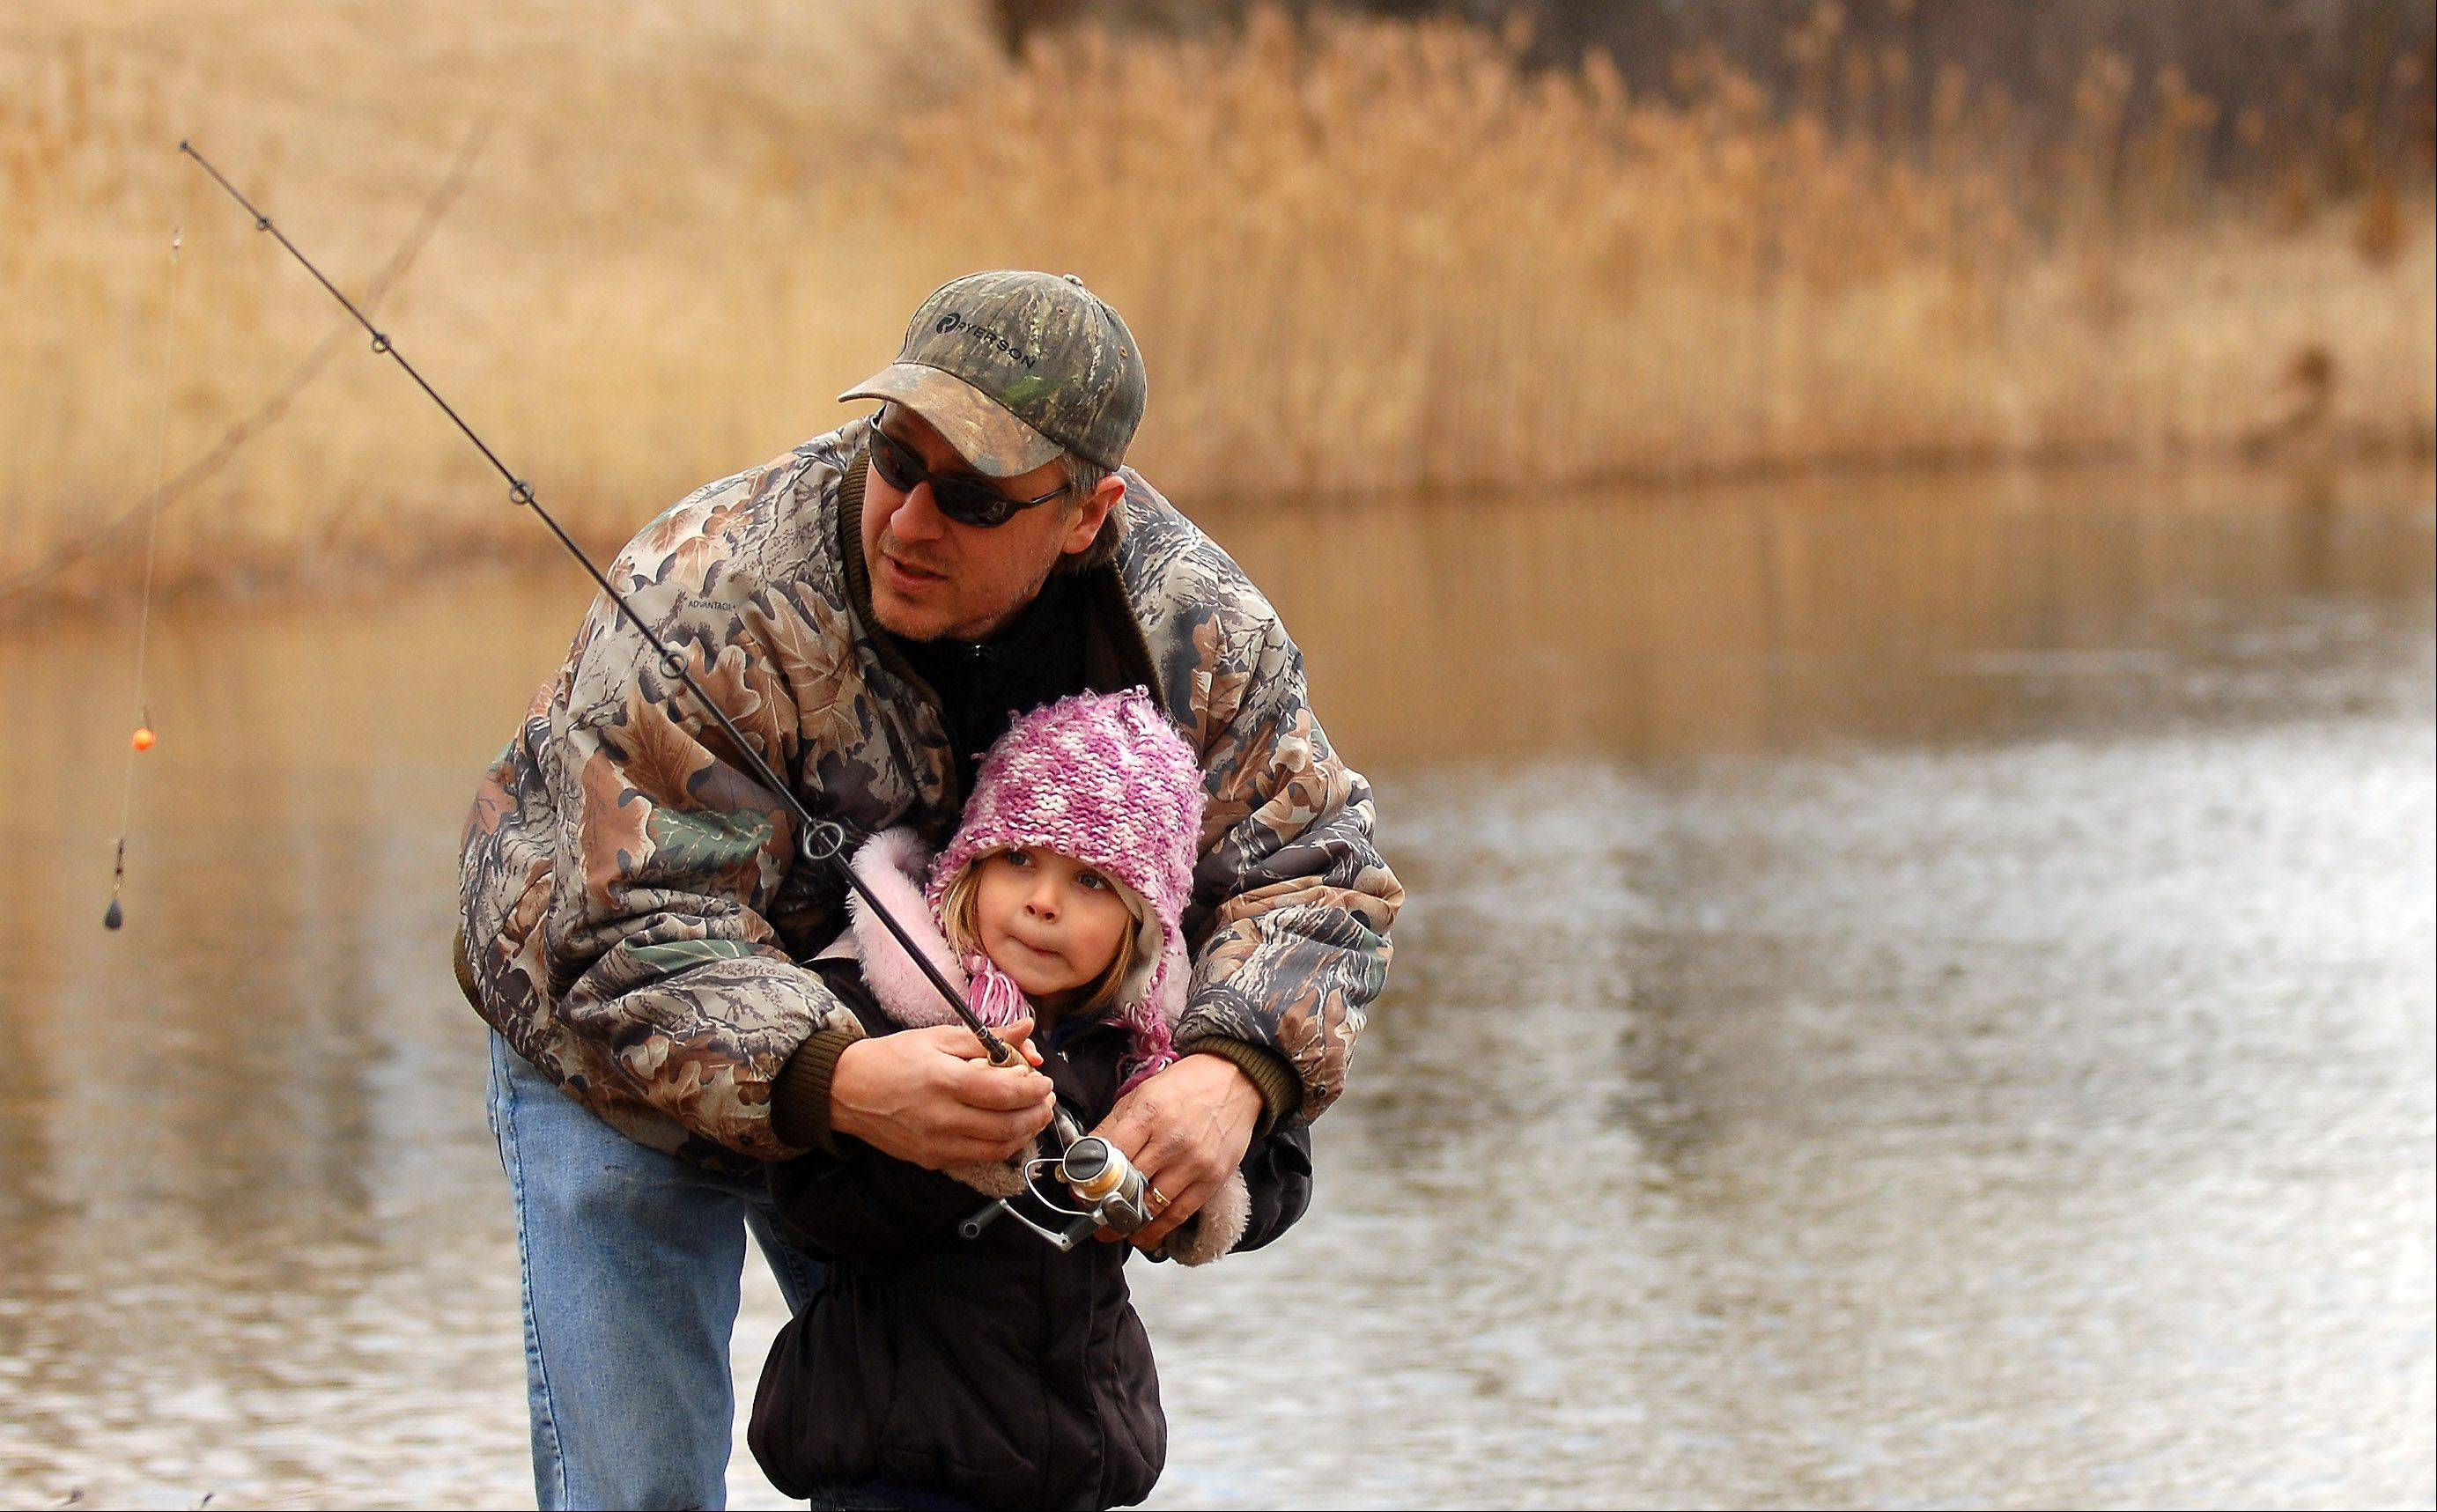 Rainbow trout fishing season opens Oct. 20 in the Forest Preserve District of DuPage County. The district and the Illinois Department of Natural Resources are stocking three lakes with rainbow trout.